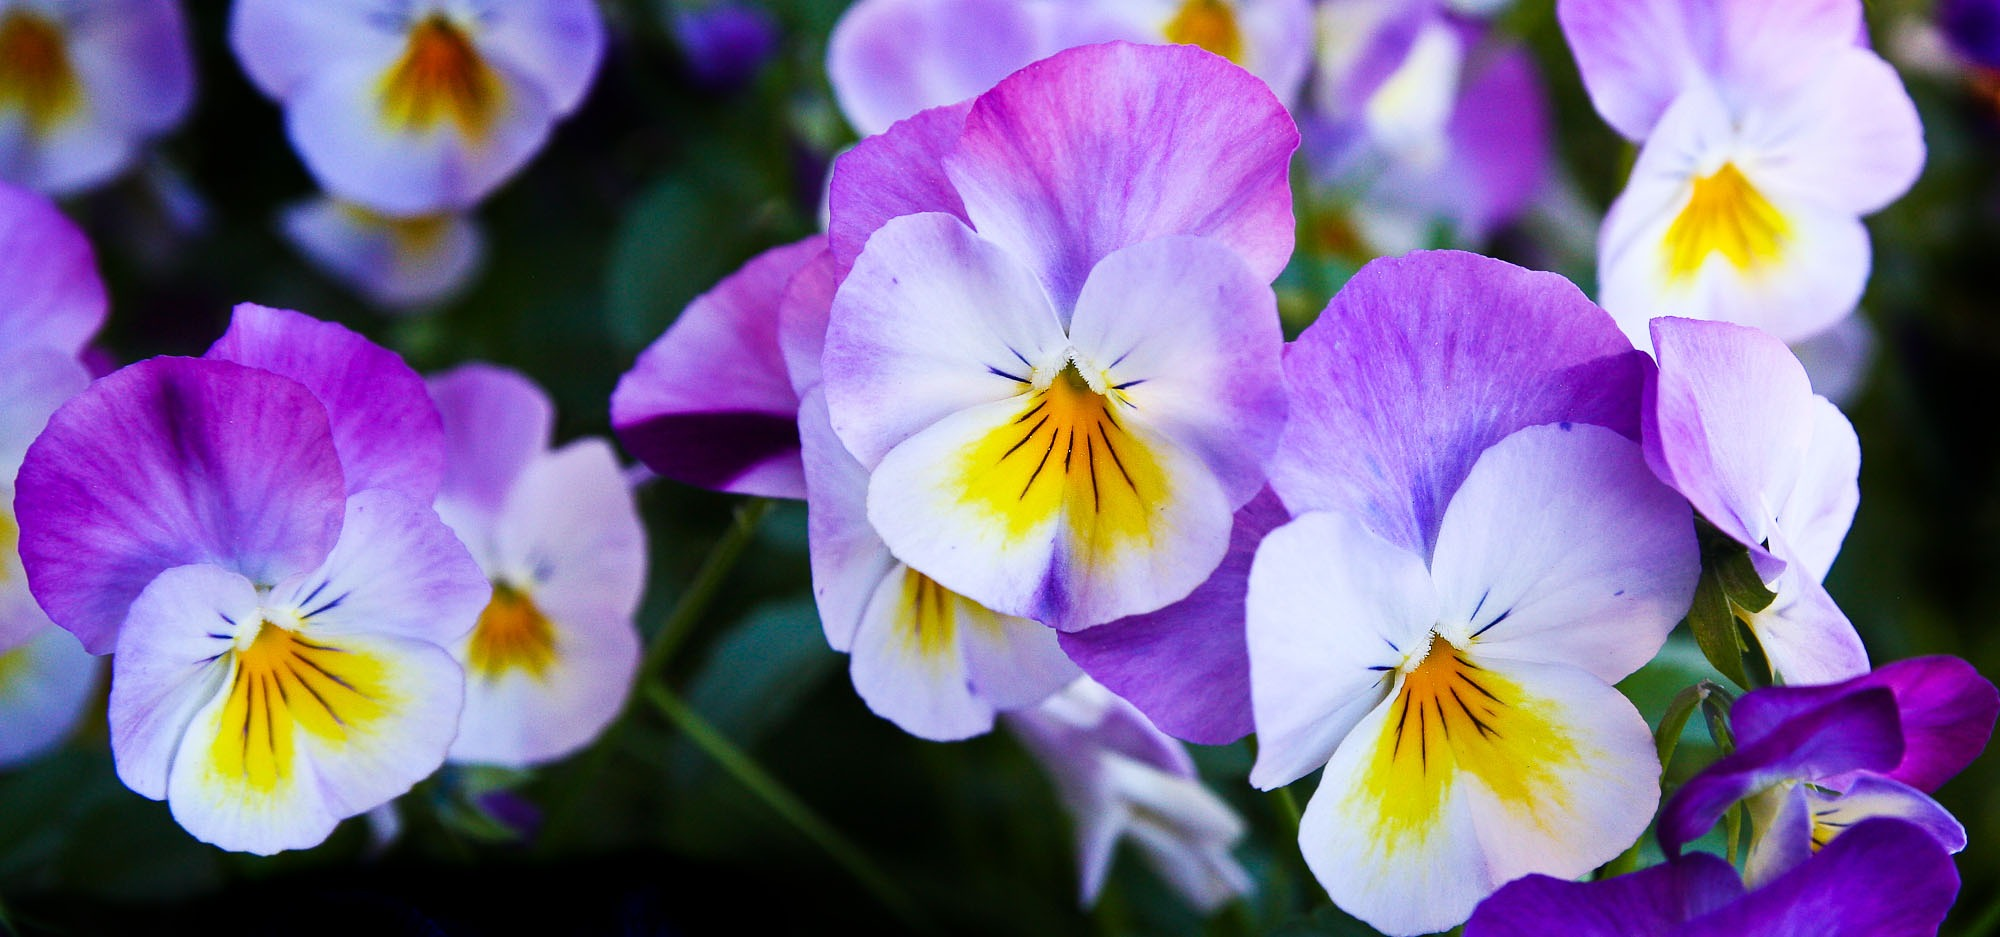 pansy-flowers-purple-nature.jpg (2000×937)